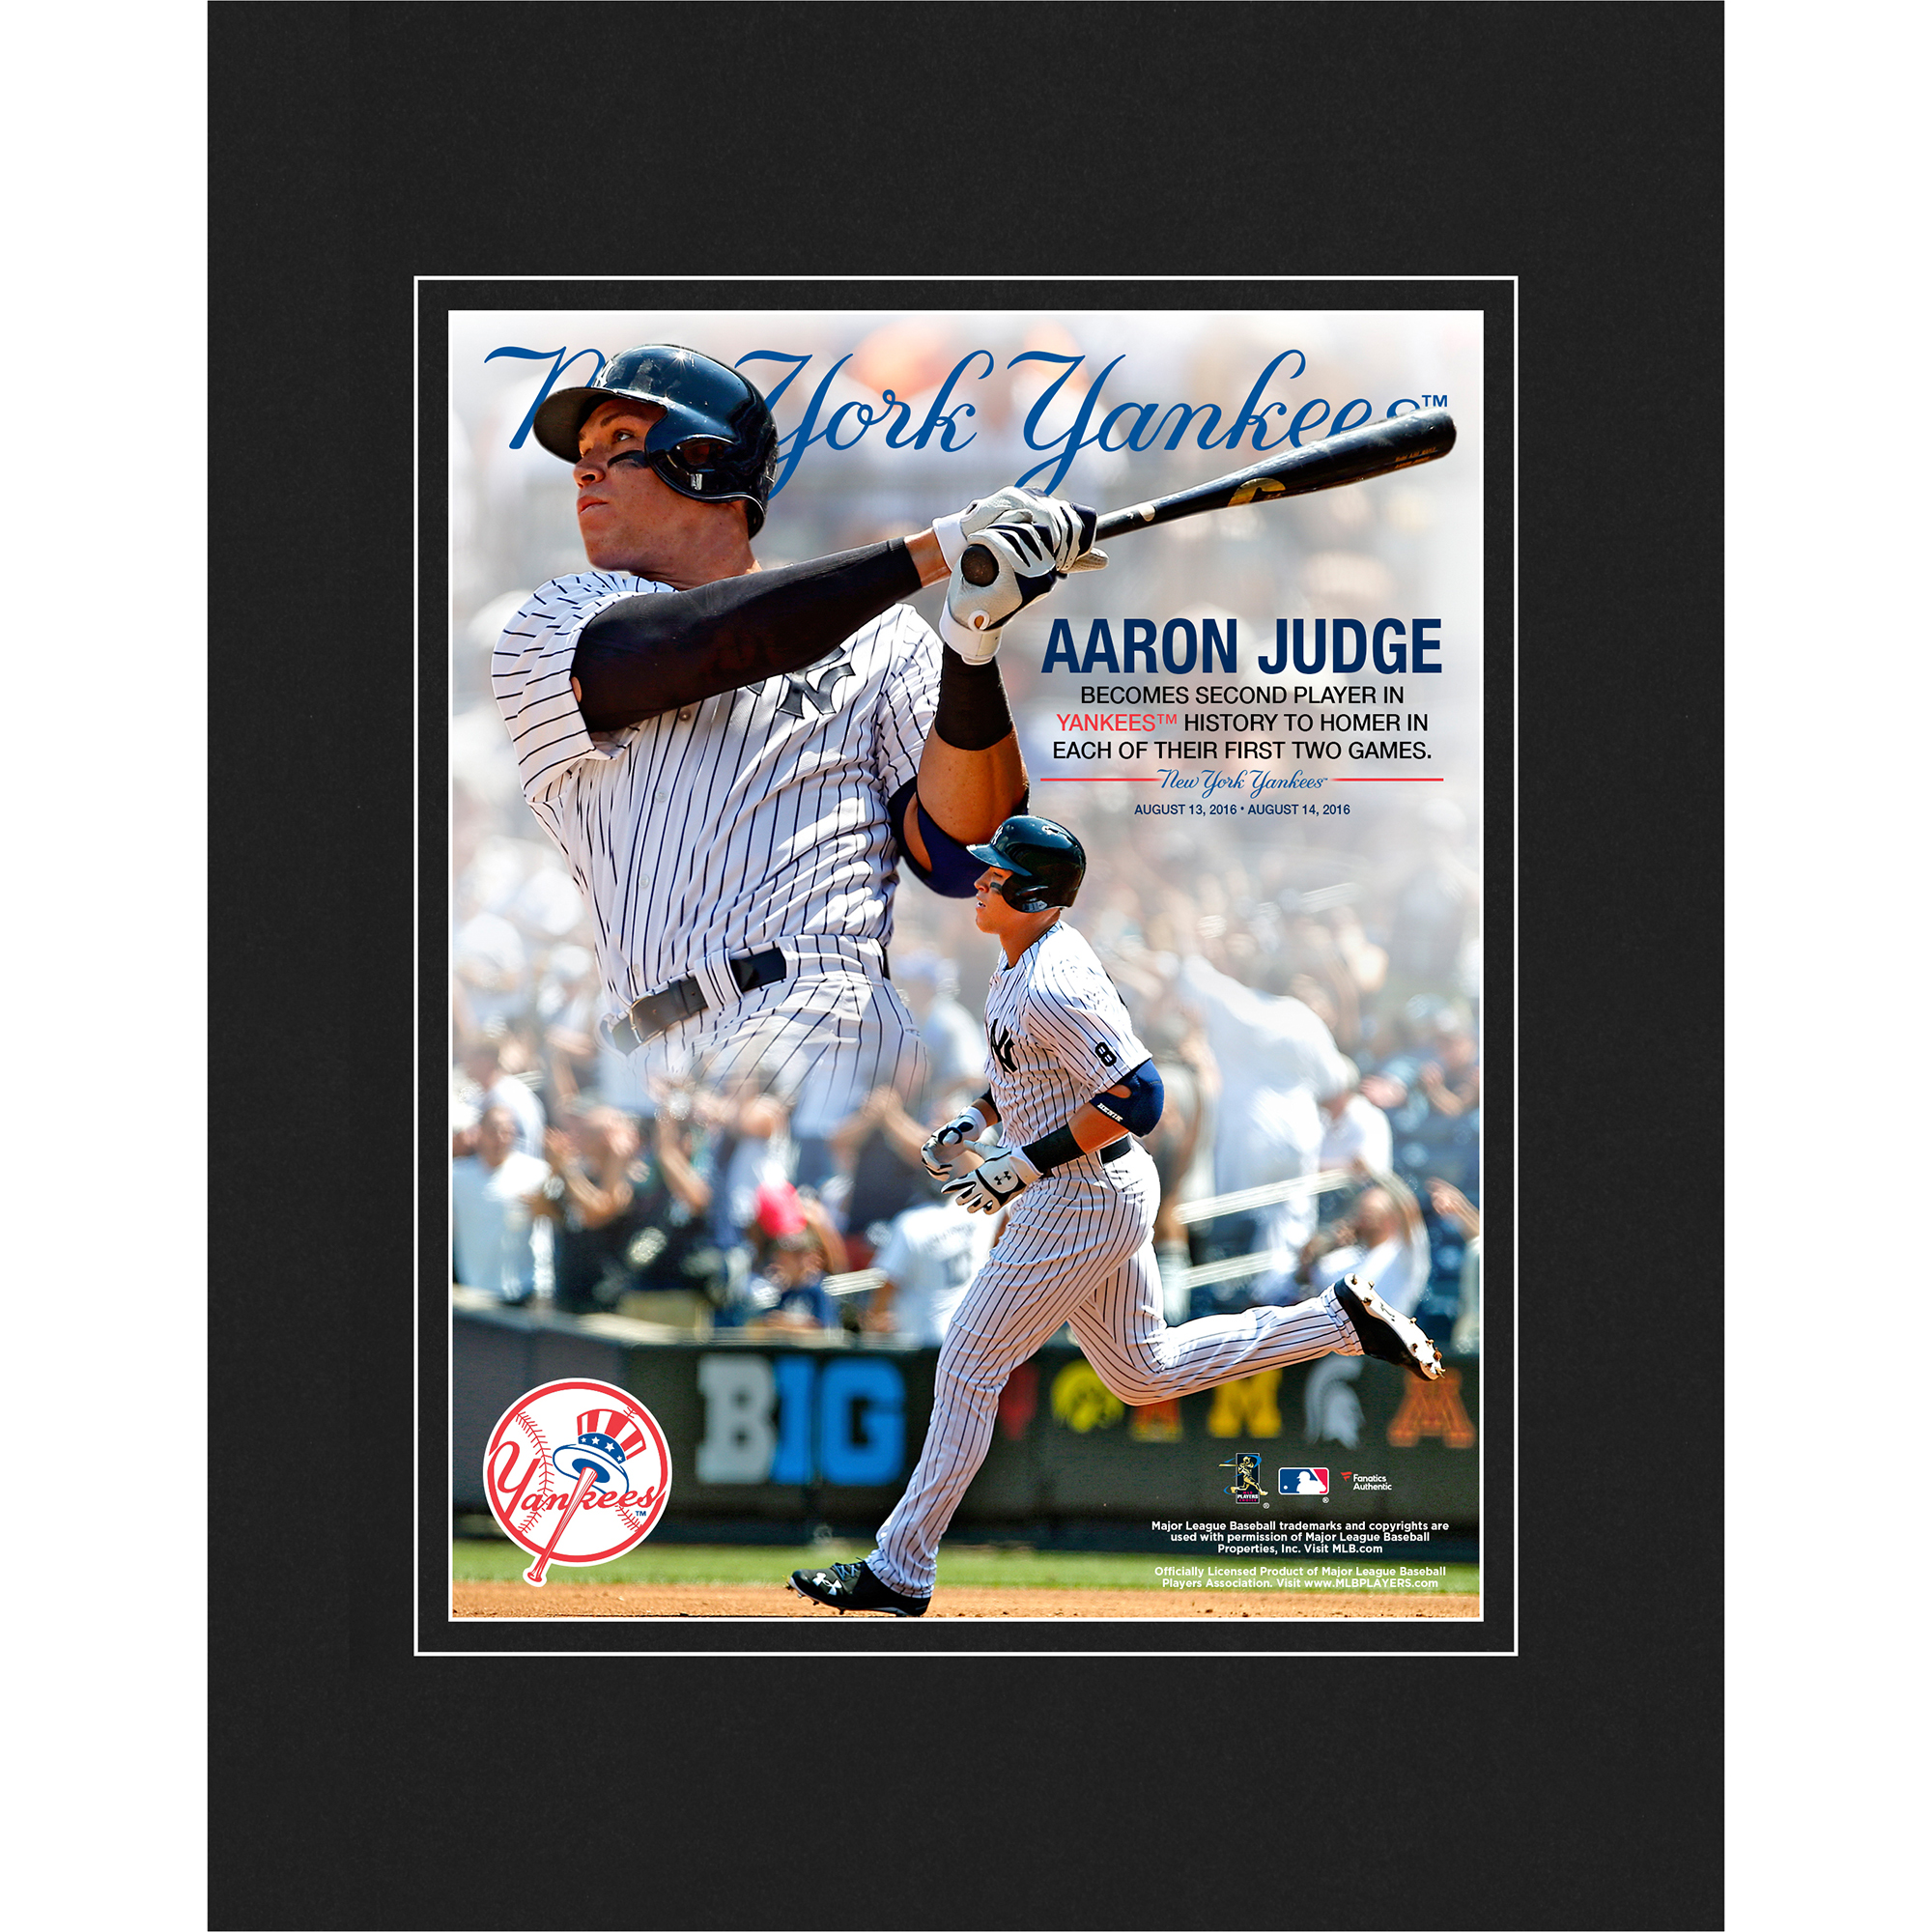 "Aaron Judge New York Yankees Fanatics Authentic 8"" x 10"" Second Yankee to Hit Home Runs in First Two Games Matted Photo - No Size"